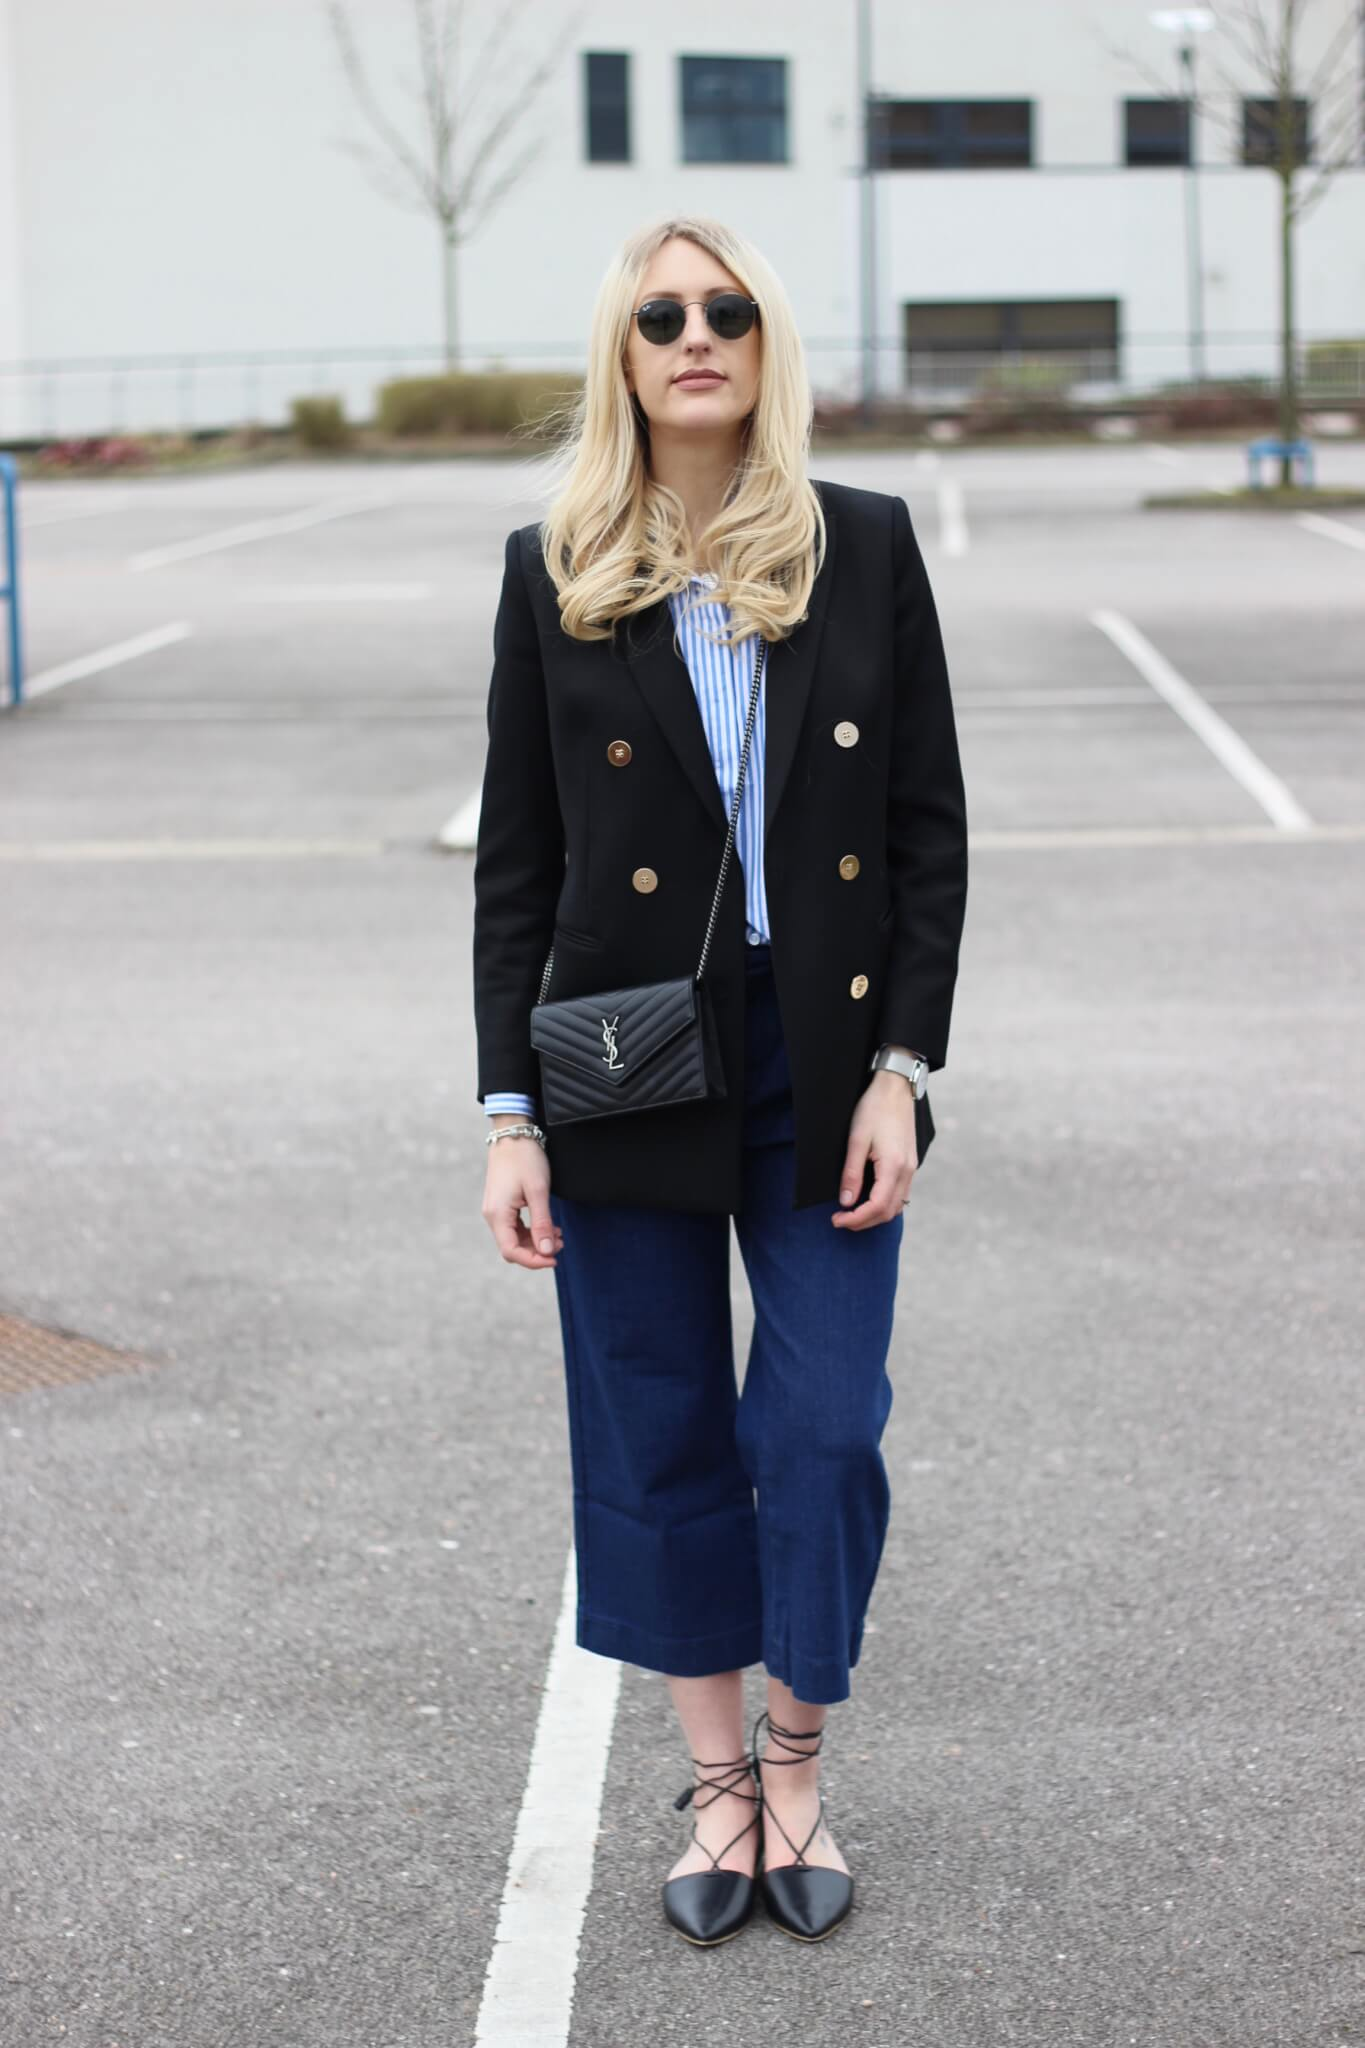 Fashion Blog Street Style Wearing Blazer And Denim Culottes